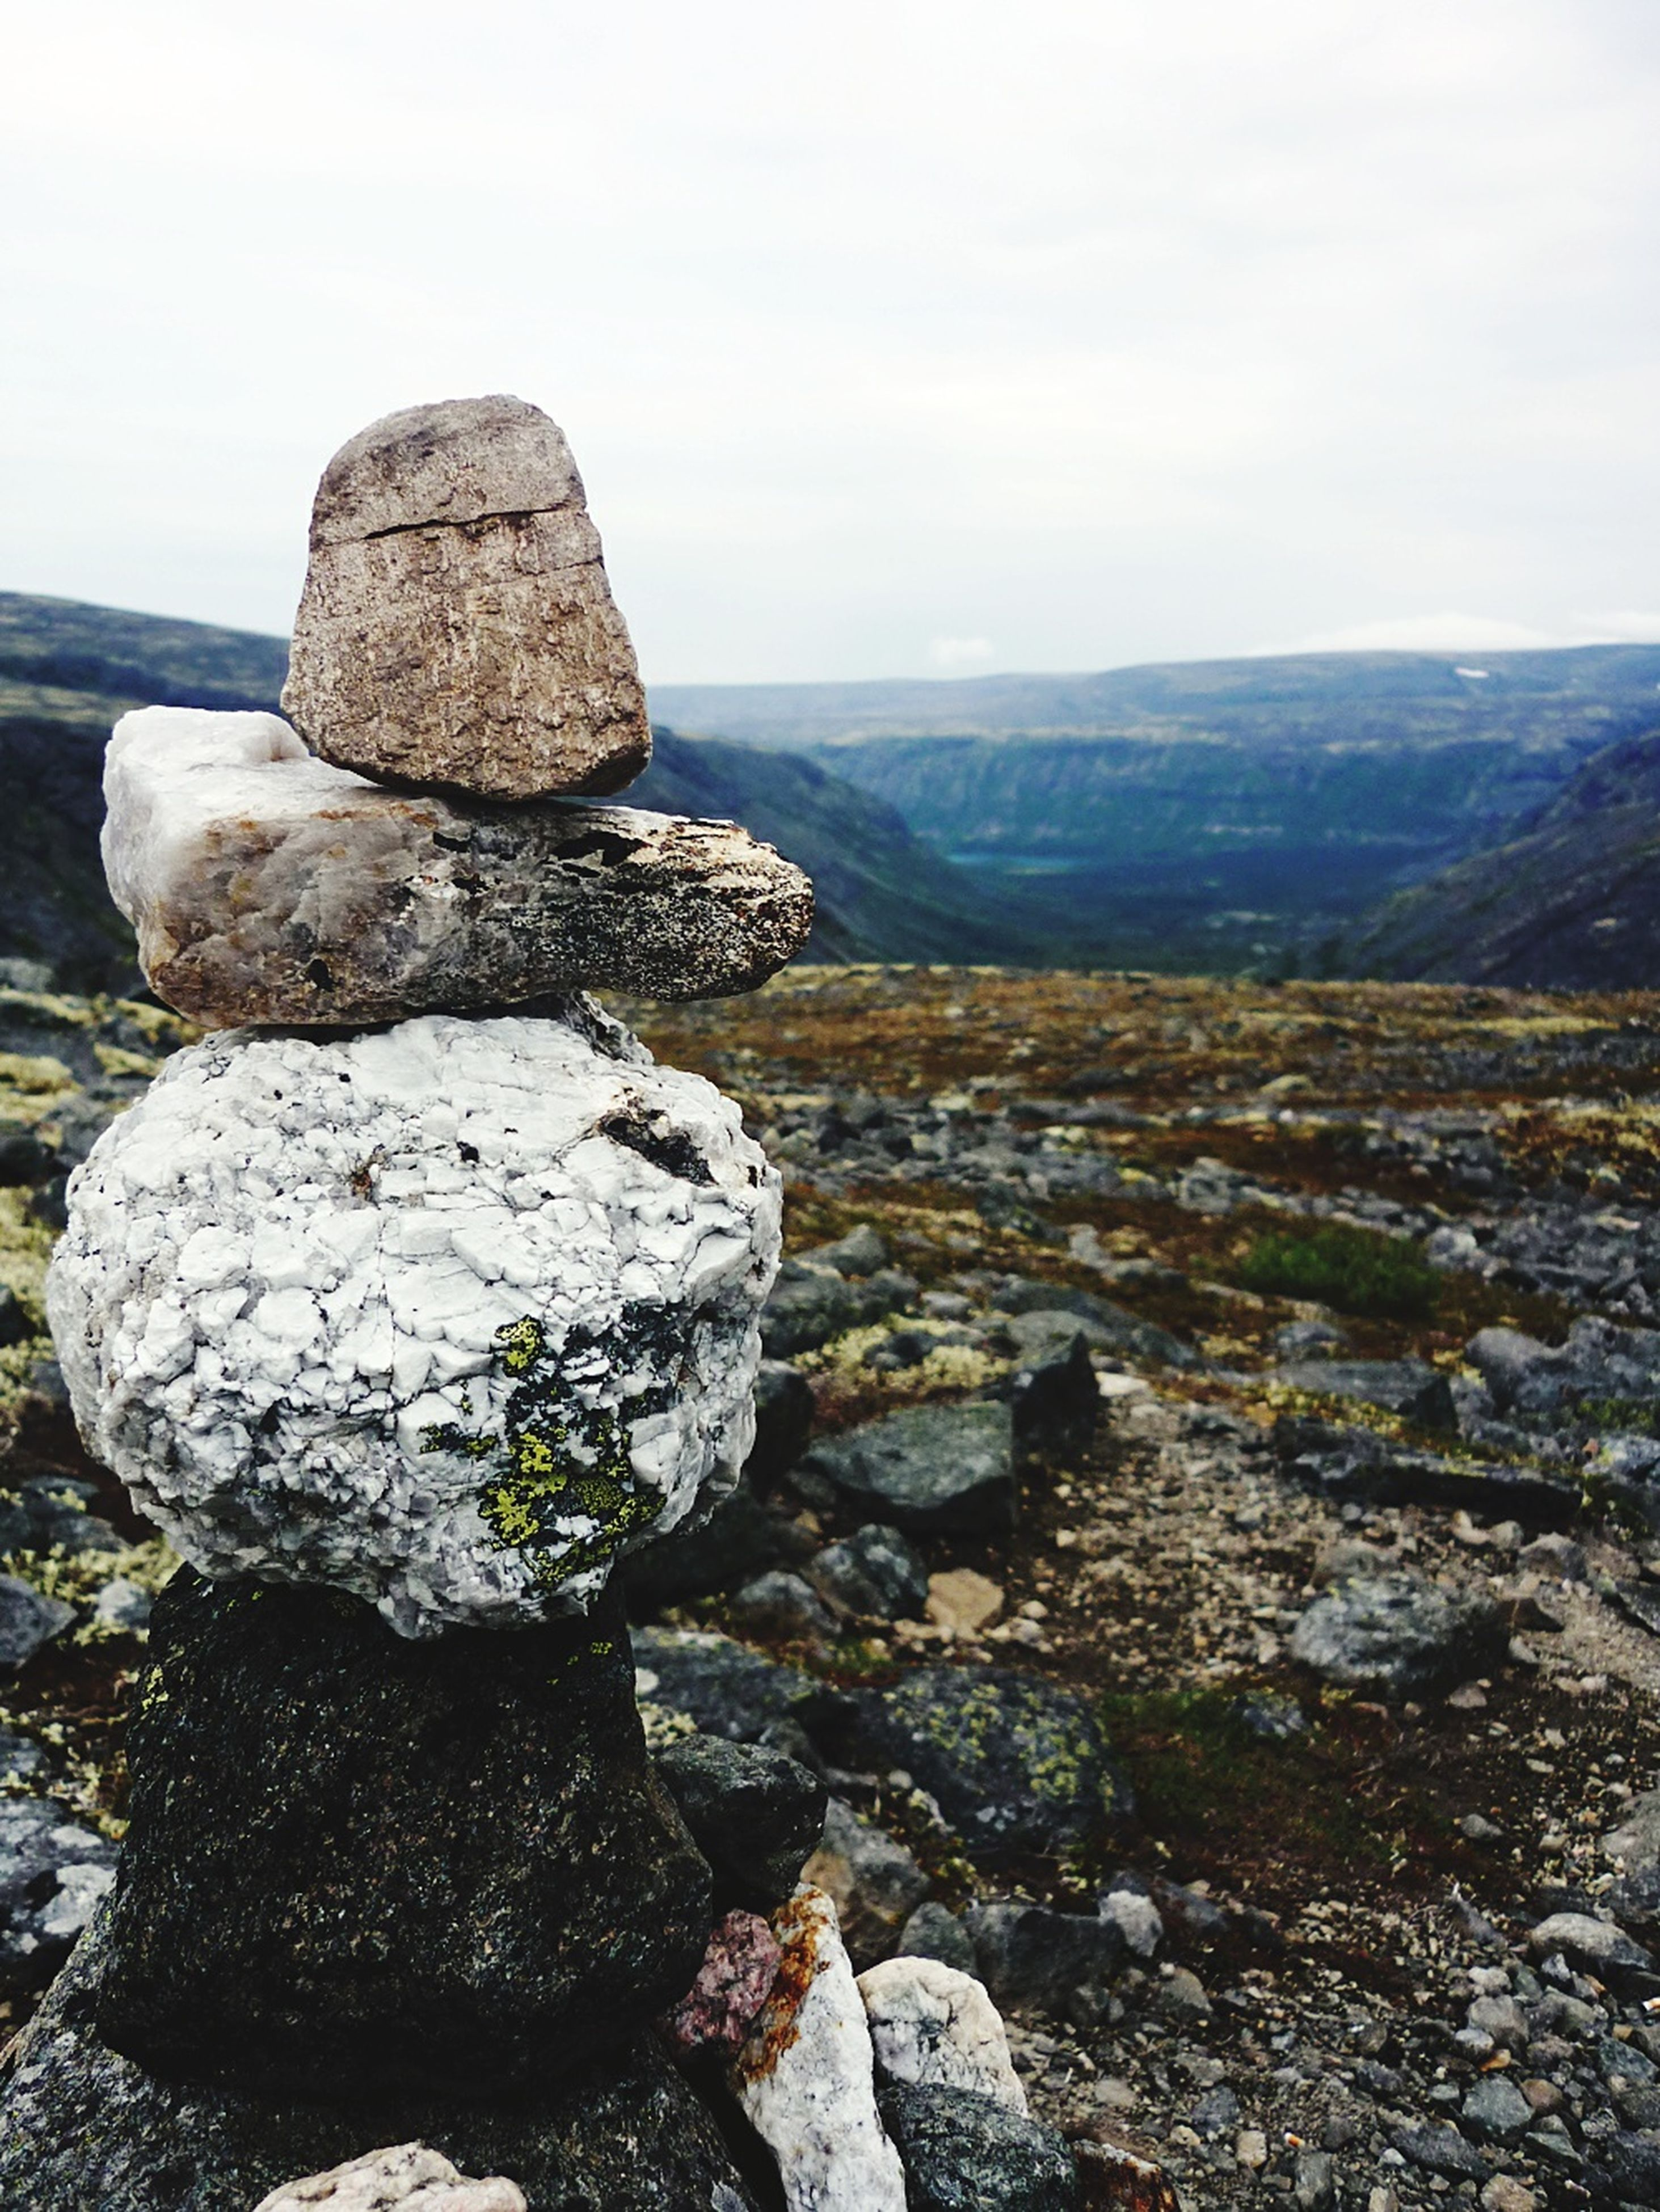 rock - object, tranquility, tranquil scene, scenics, rock formation, sky, rock, beauty in nature, nature, stack, stone - object, landscape, stone, water, mountain, sea, geology, non-urban scene, idyllic, remote